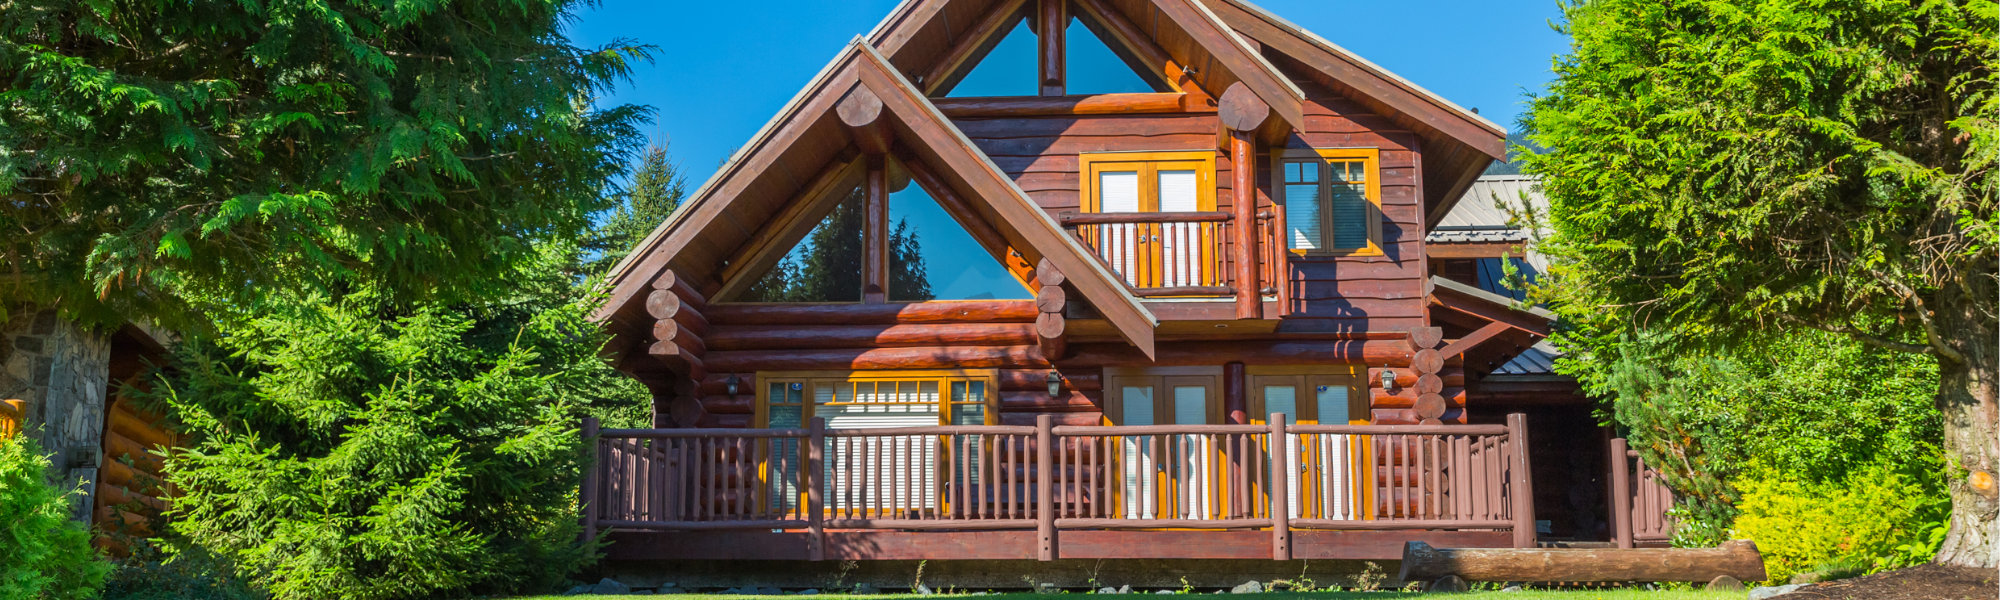 Luxury Concierge Service for Pagosa Springs Homes